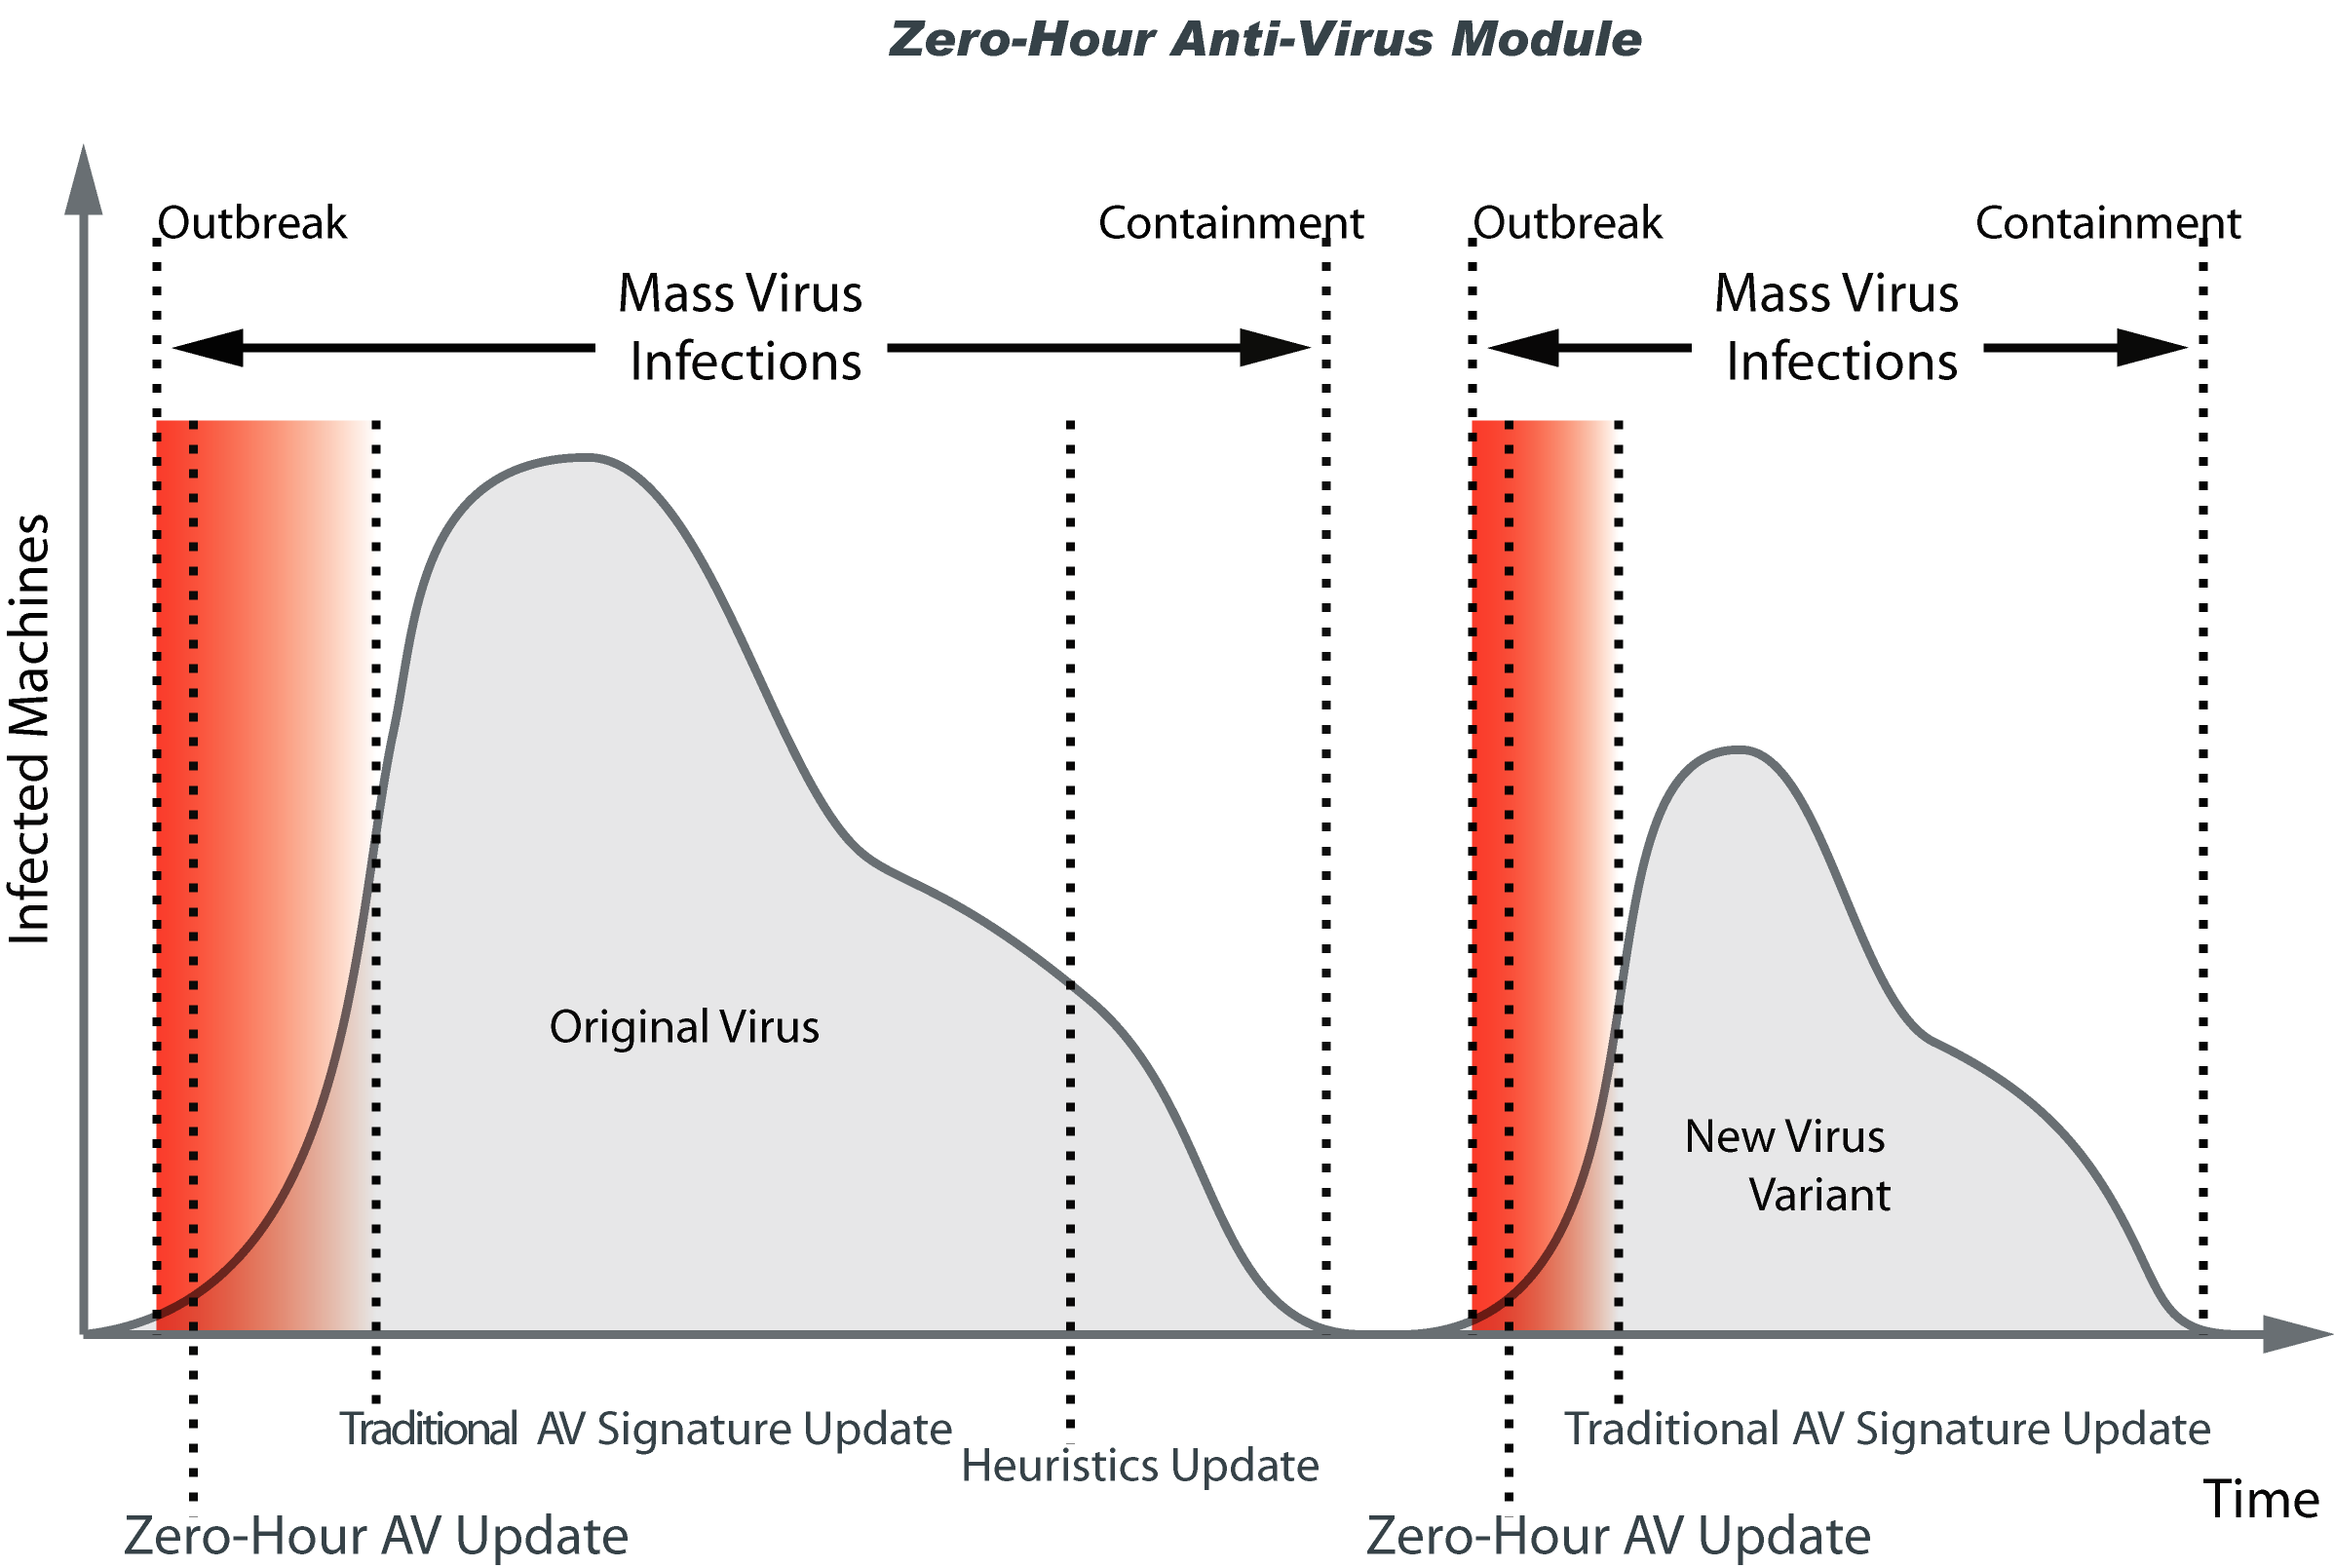 Chapter 12 - Zero-Hour Anti-Virus Module About the Zero-Hour Anti-Virus Module The Zero-Hour Anti-Virus Module protects organizations against new viruses and other forms of malicious code during the